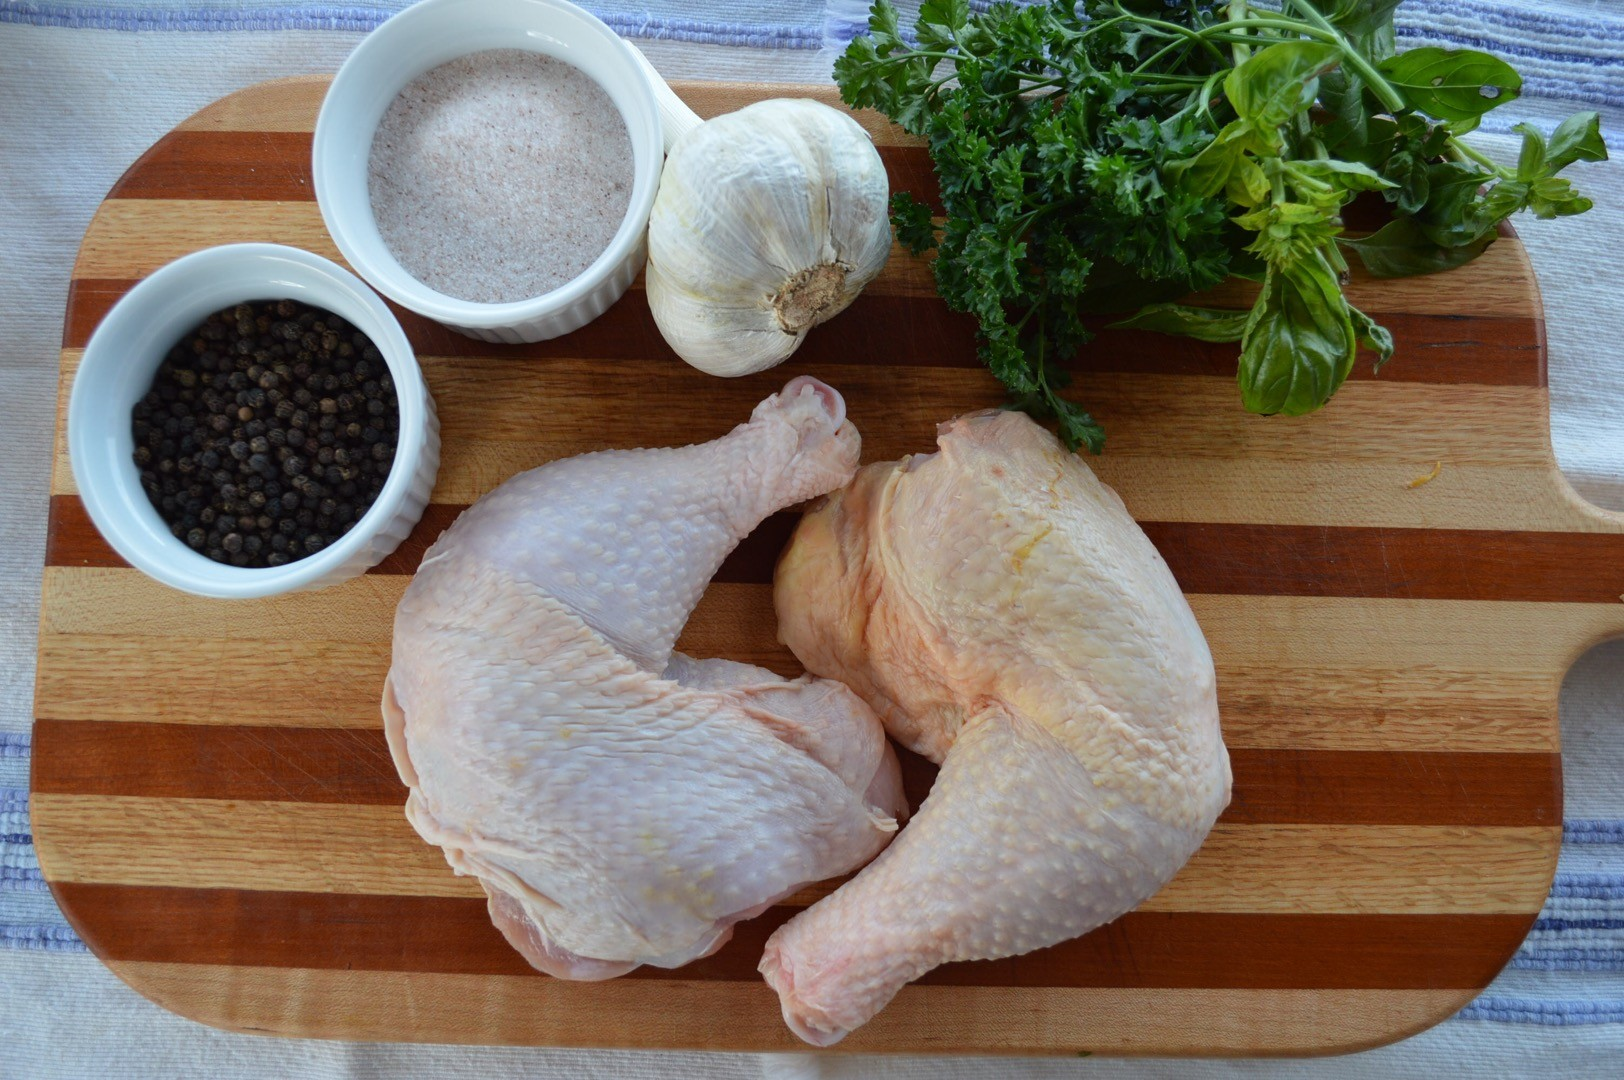 Pasture-Raised Chicken Leg with Thigh (2 per pack)